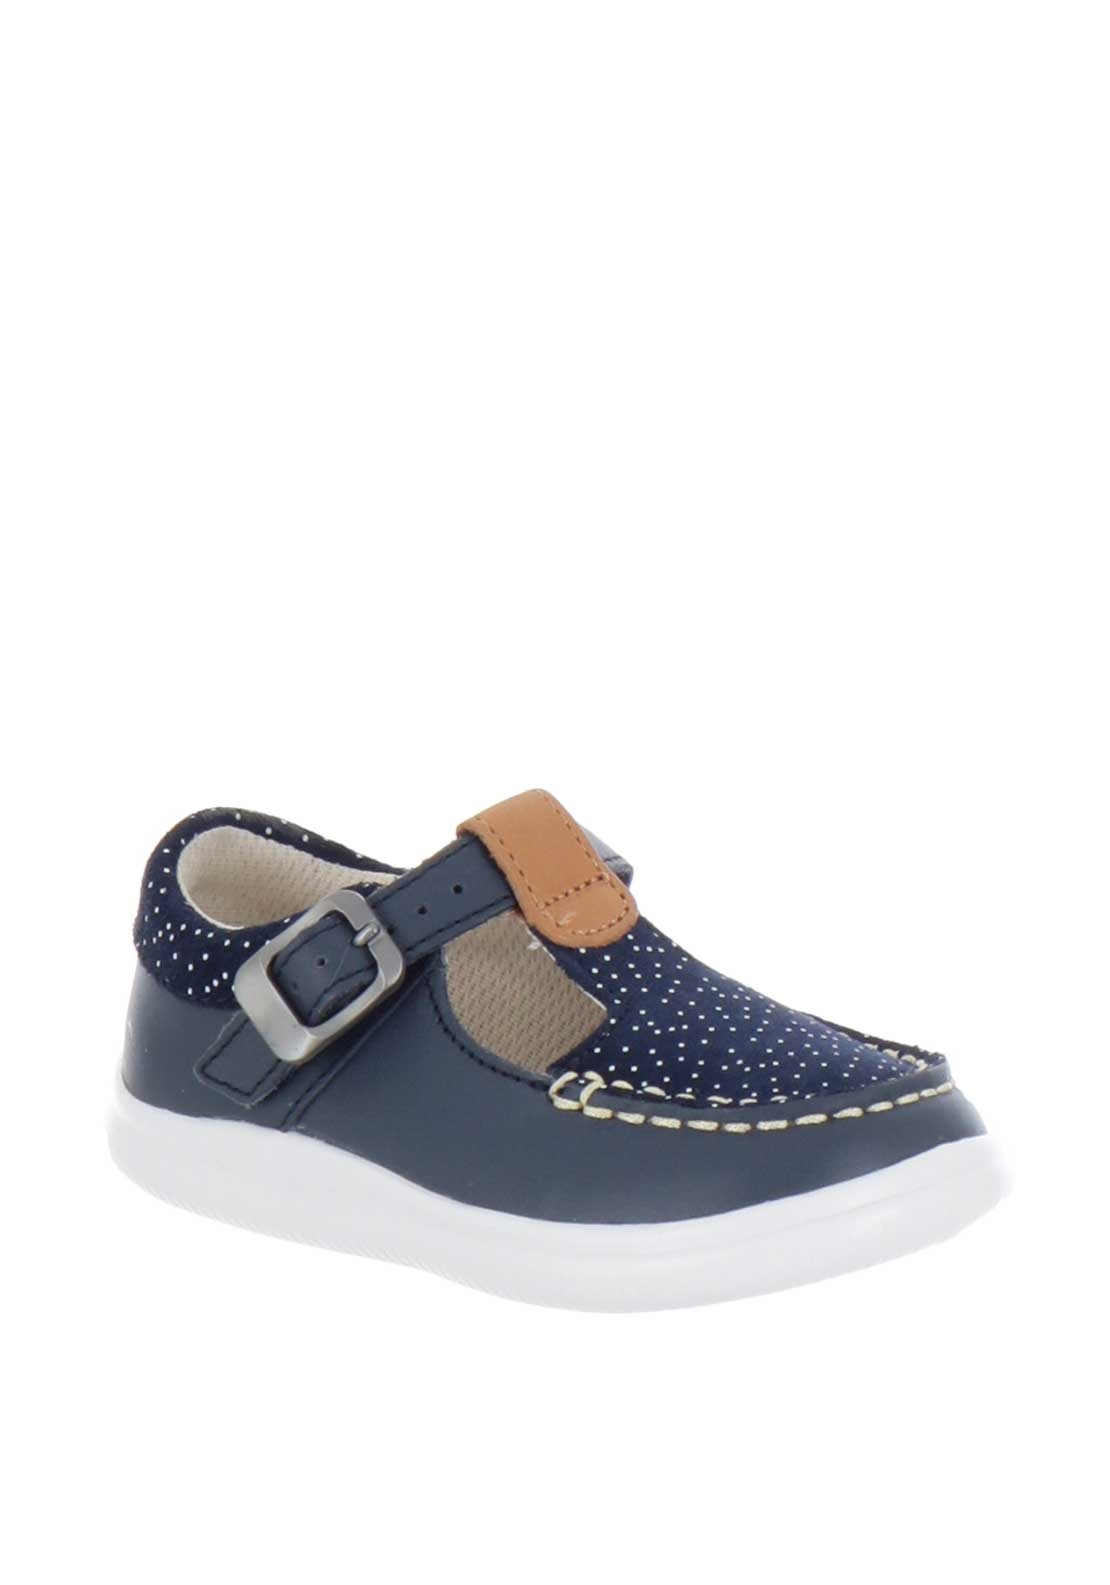 Clarks Baby Girls Cloud Rosa T-Bar Shoes, Navy